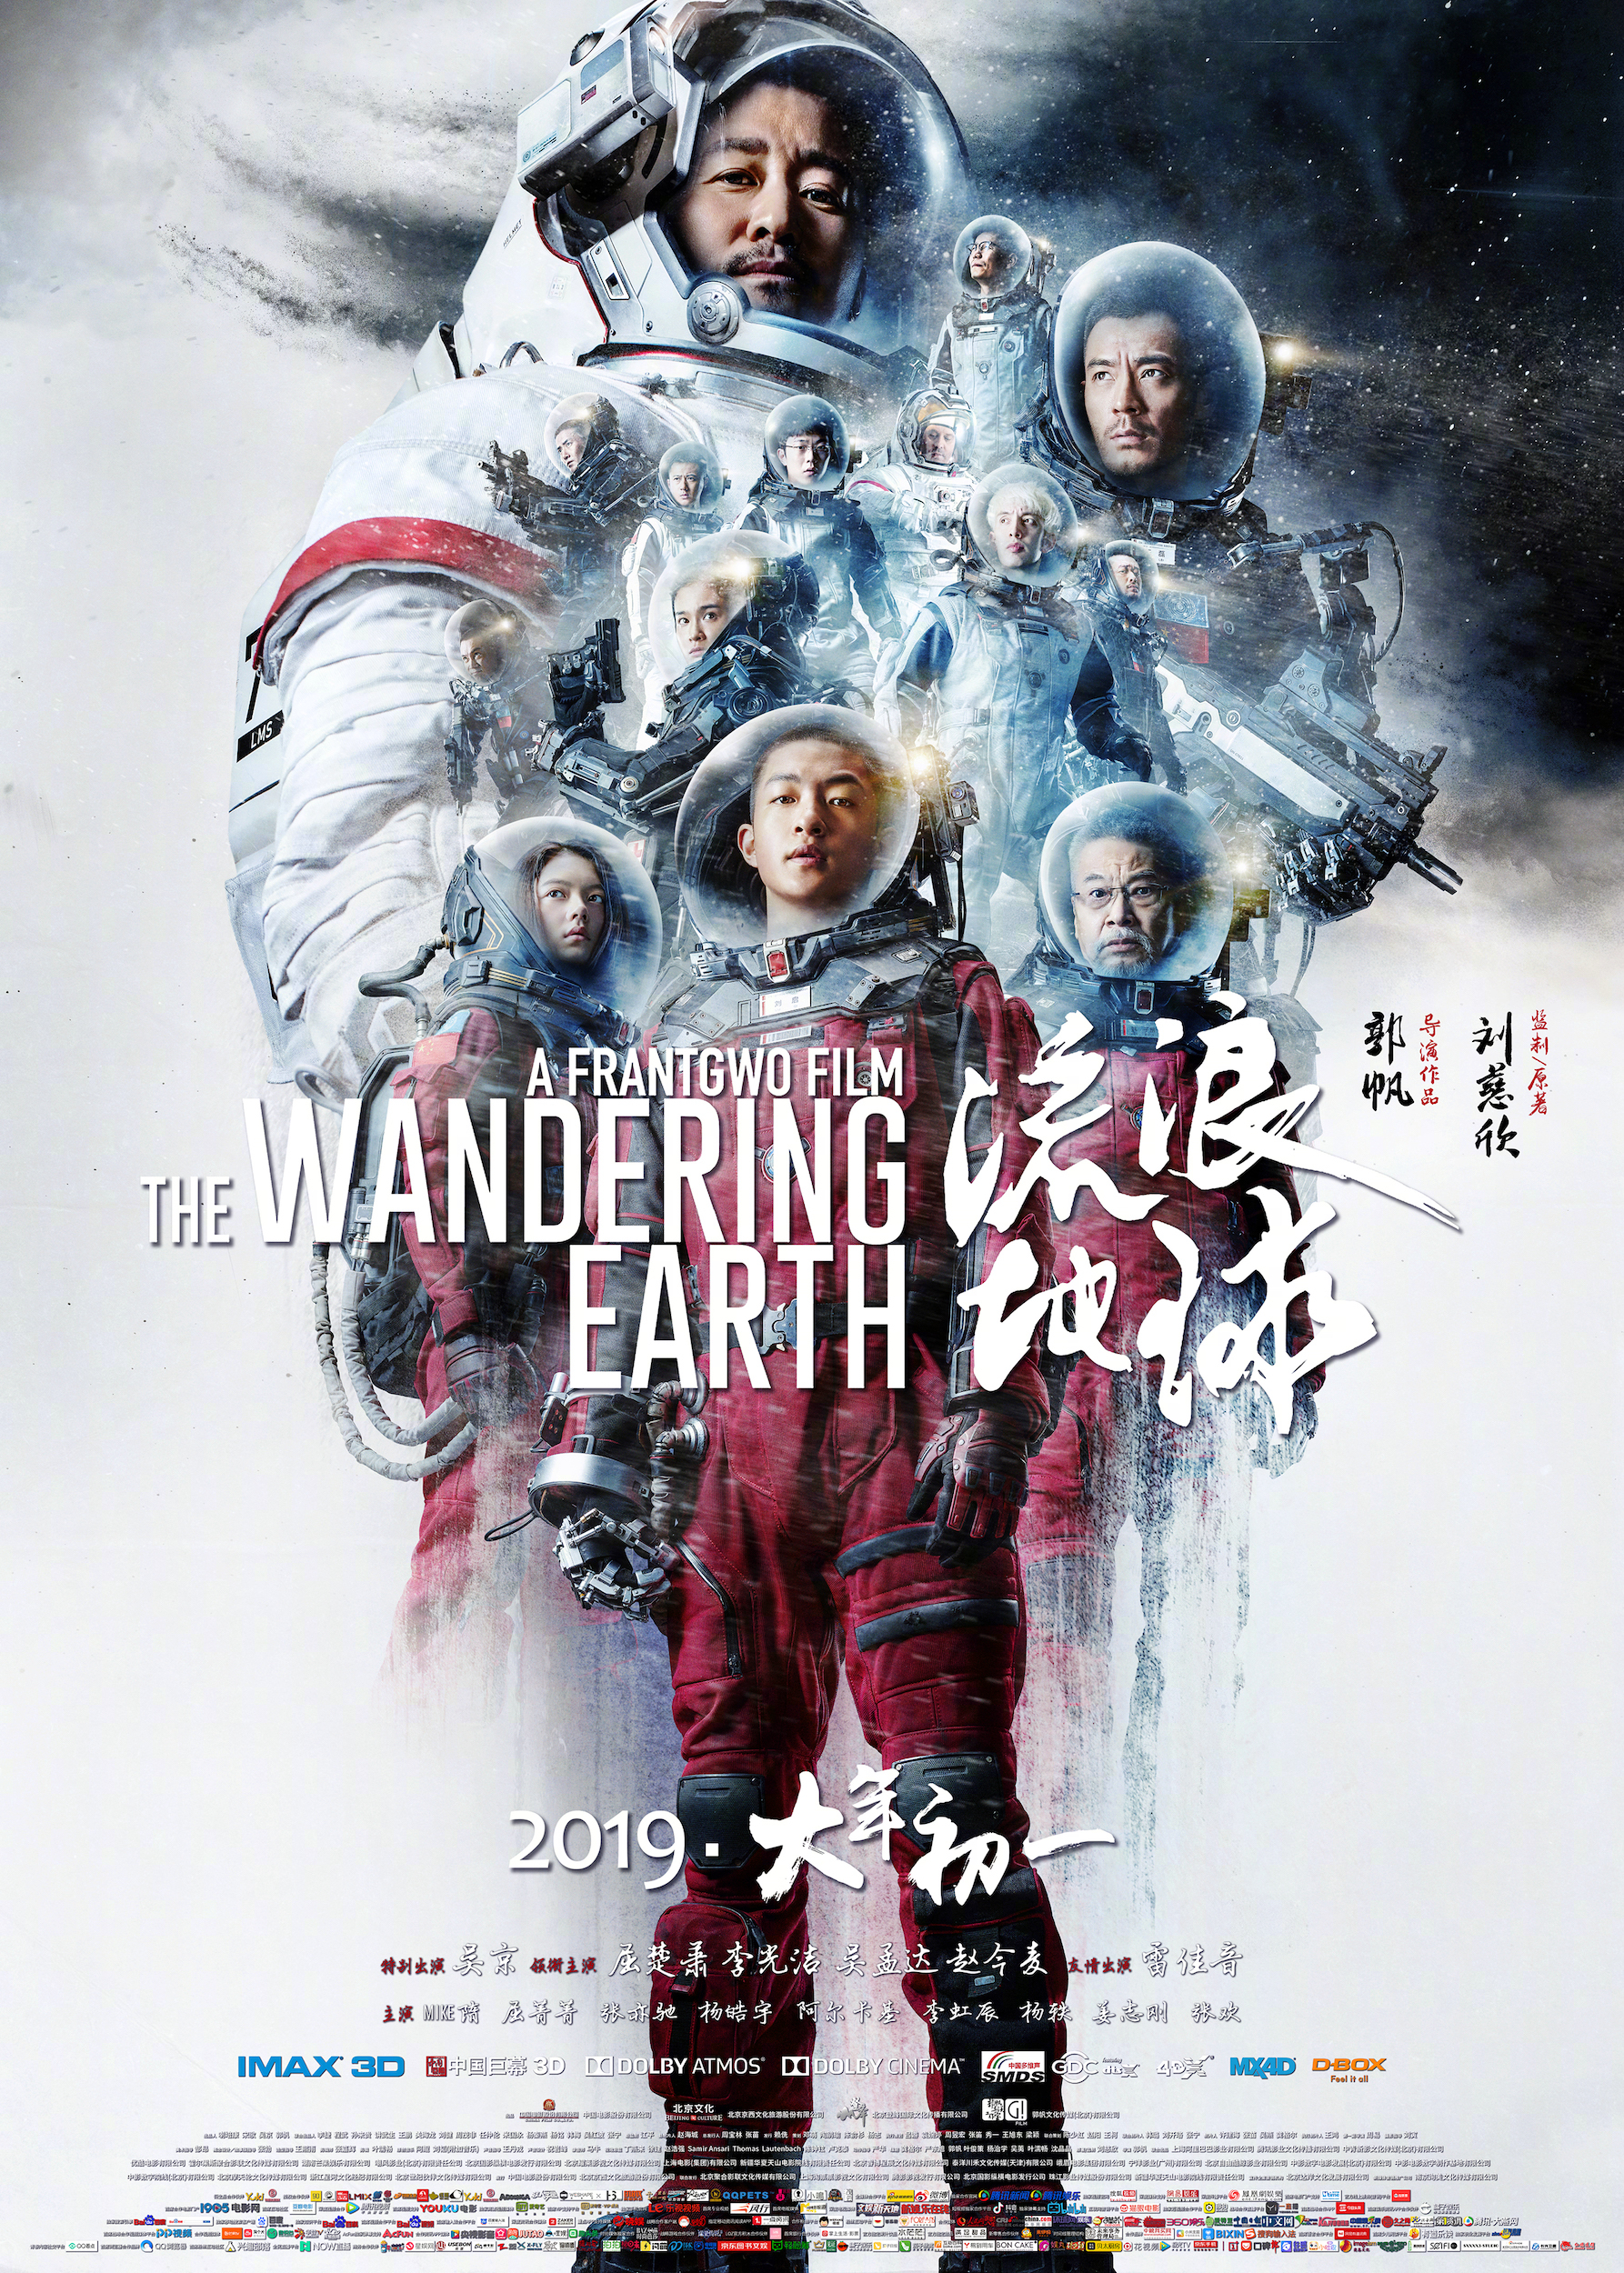 The Wandering Earth 2019 Imdb